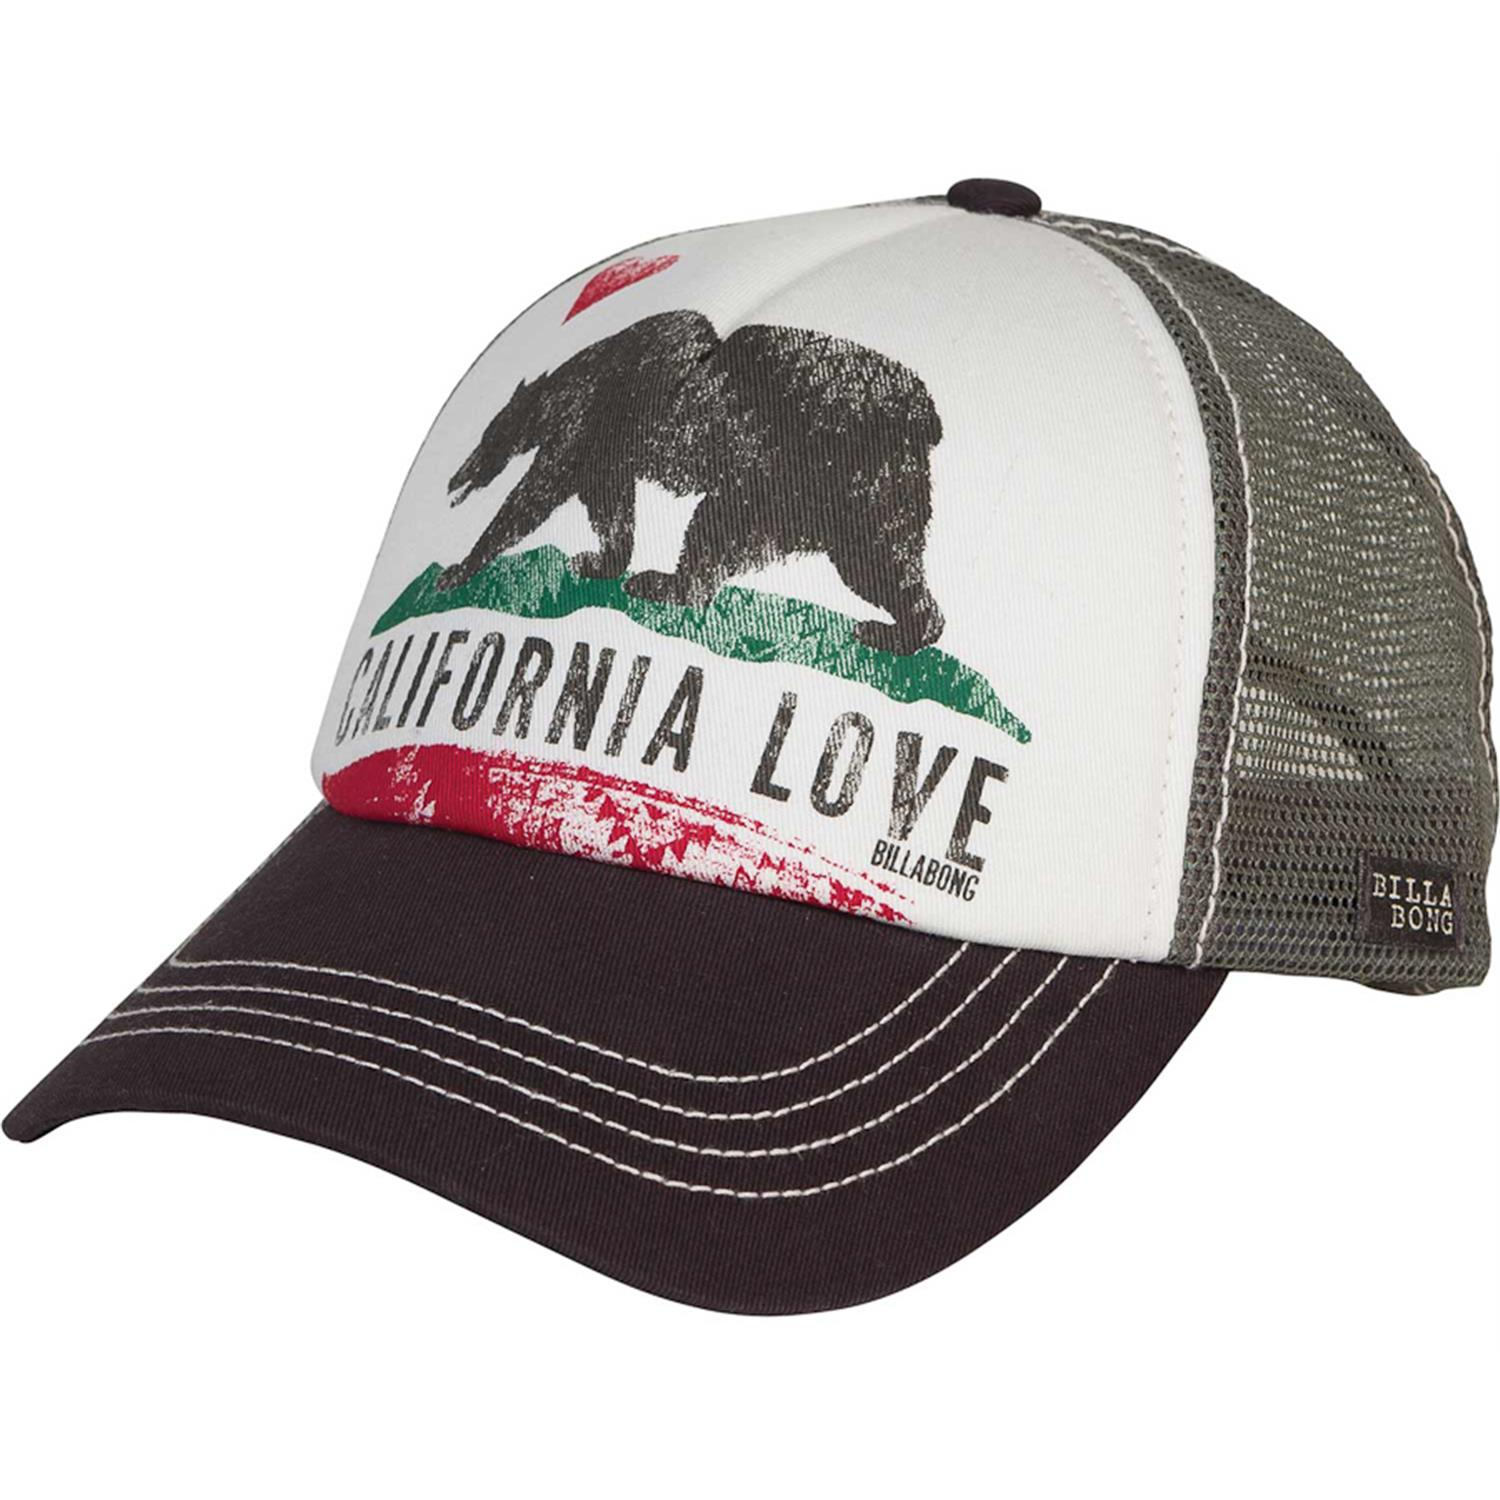 billabong pitstop trucker hat s evo